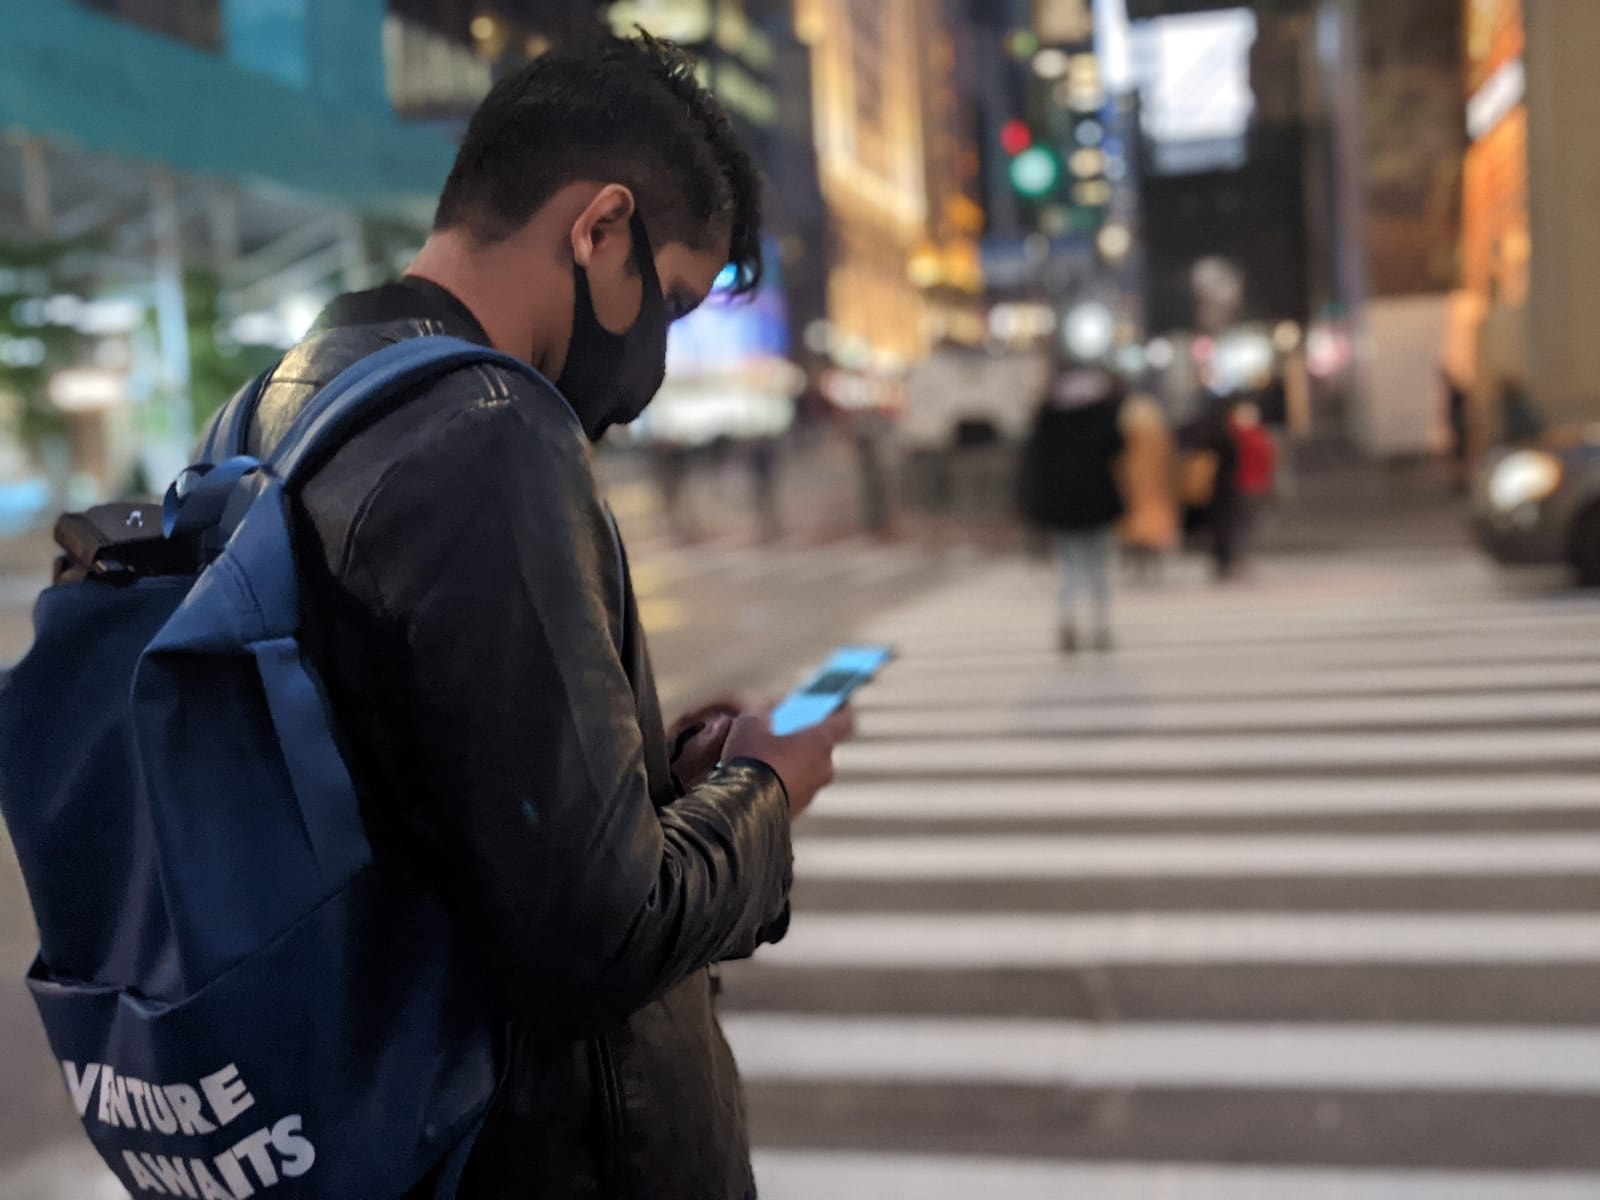 Tanveer files a 2020 US presidential elections update on his cell phone from New York